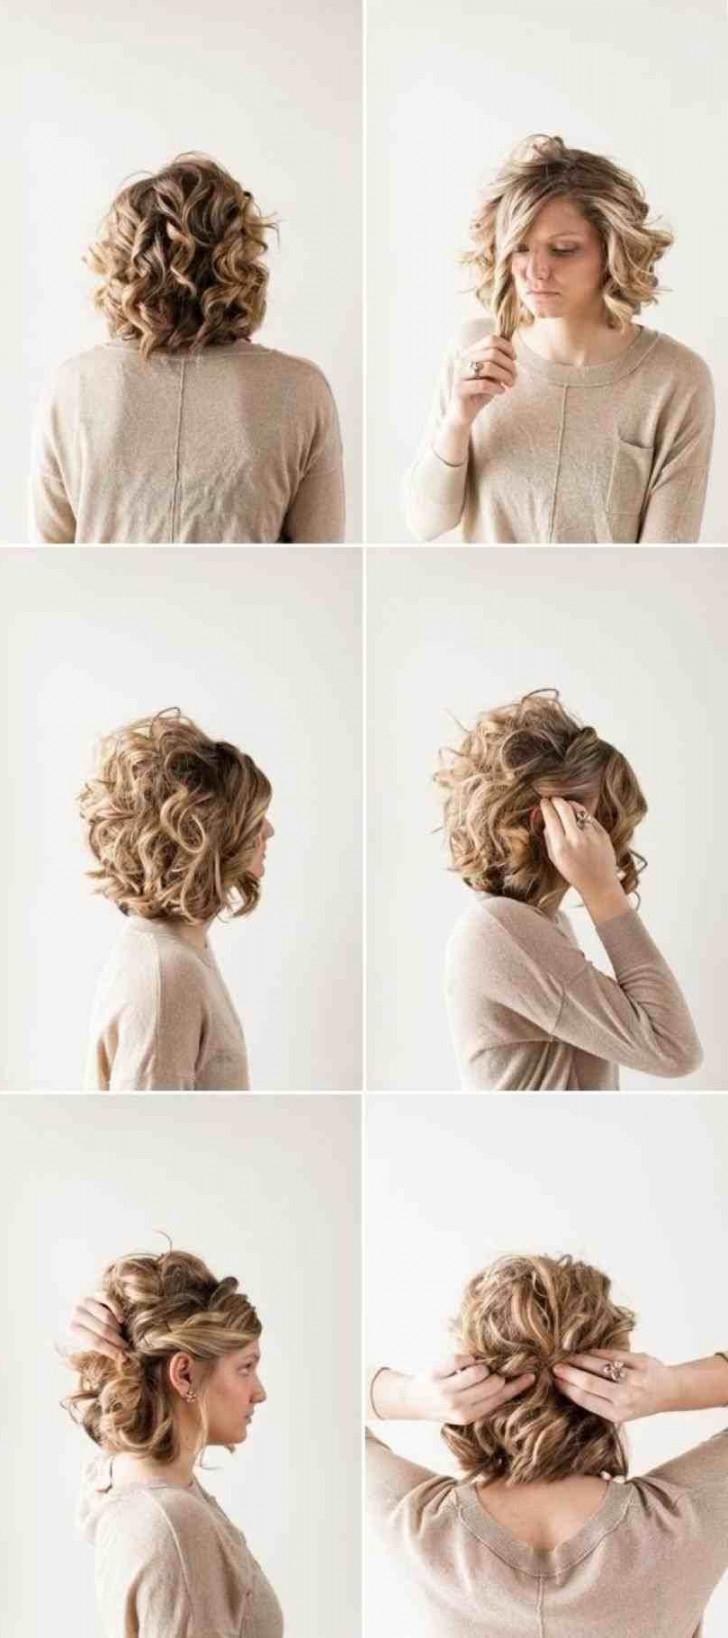 By Easy Easy Homecoming Updos For Short Hair Prom Hairstyles U Intended For Updo Hairstyles For Short Hair Prom (View 7 of 15)